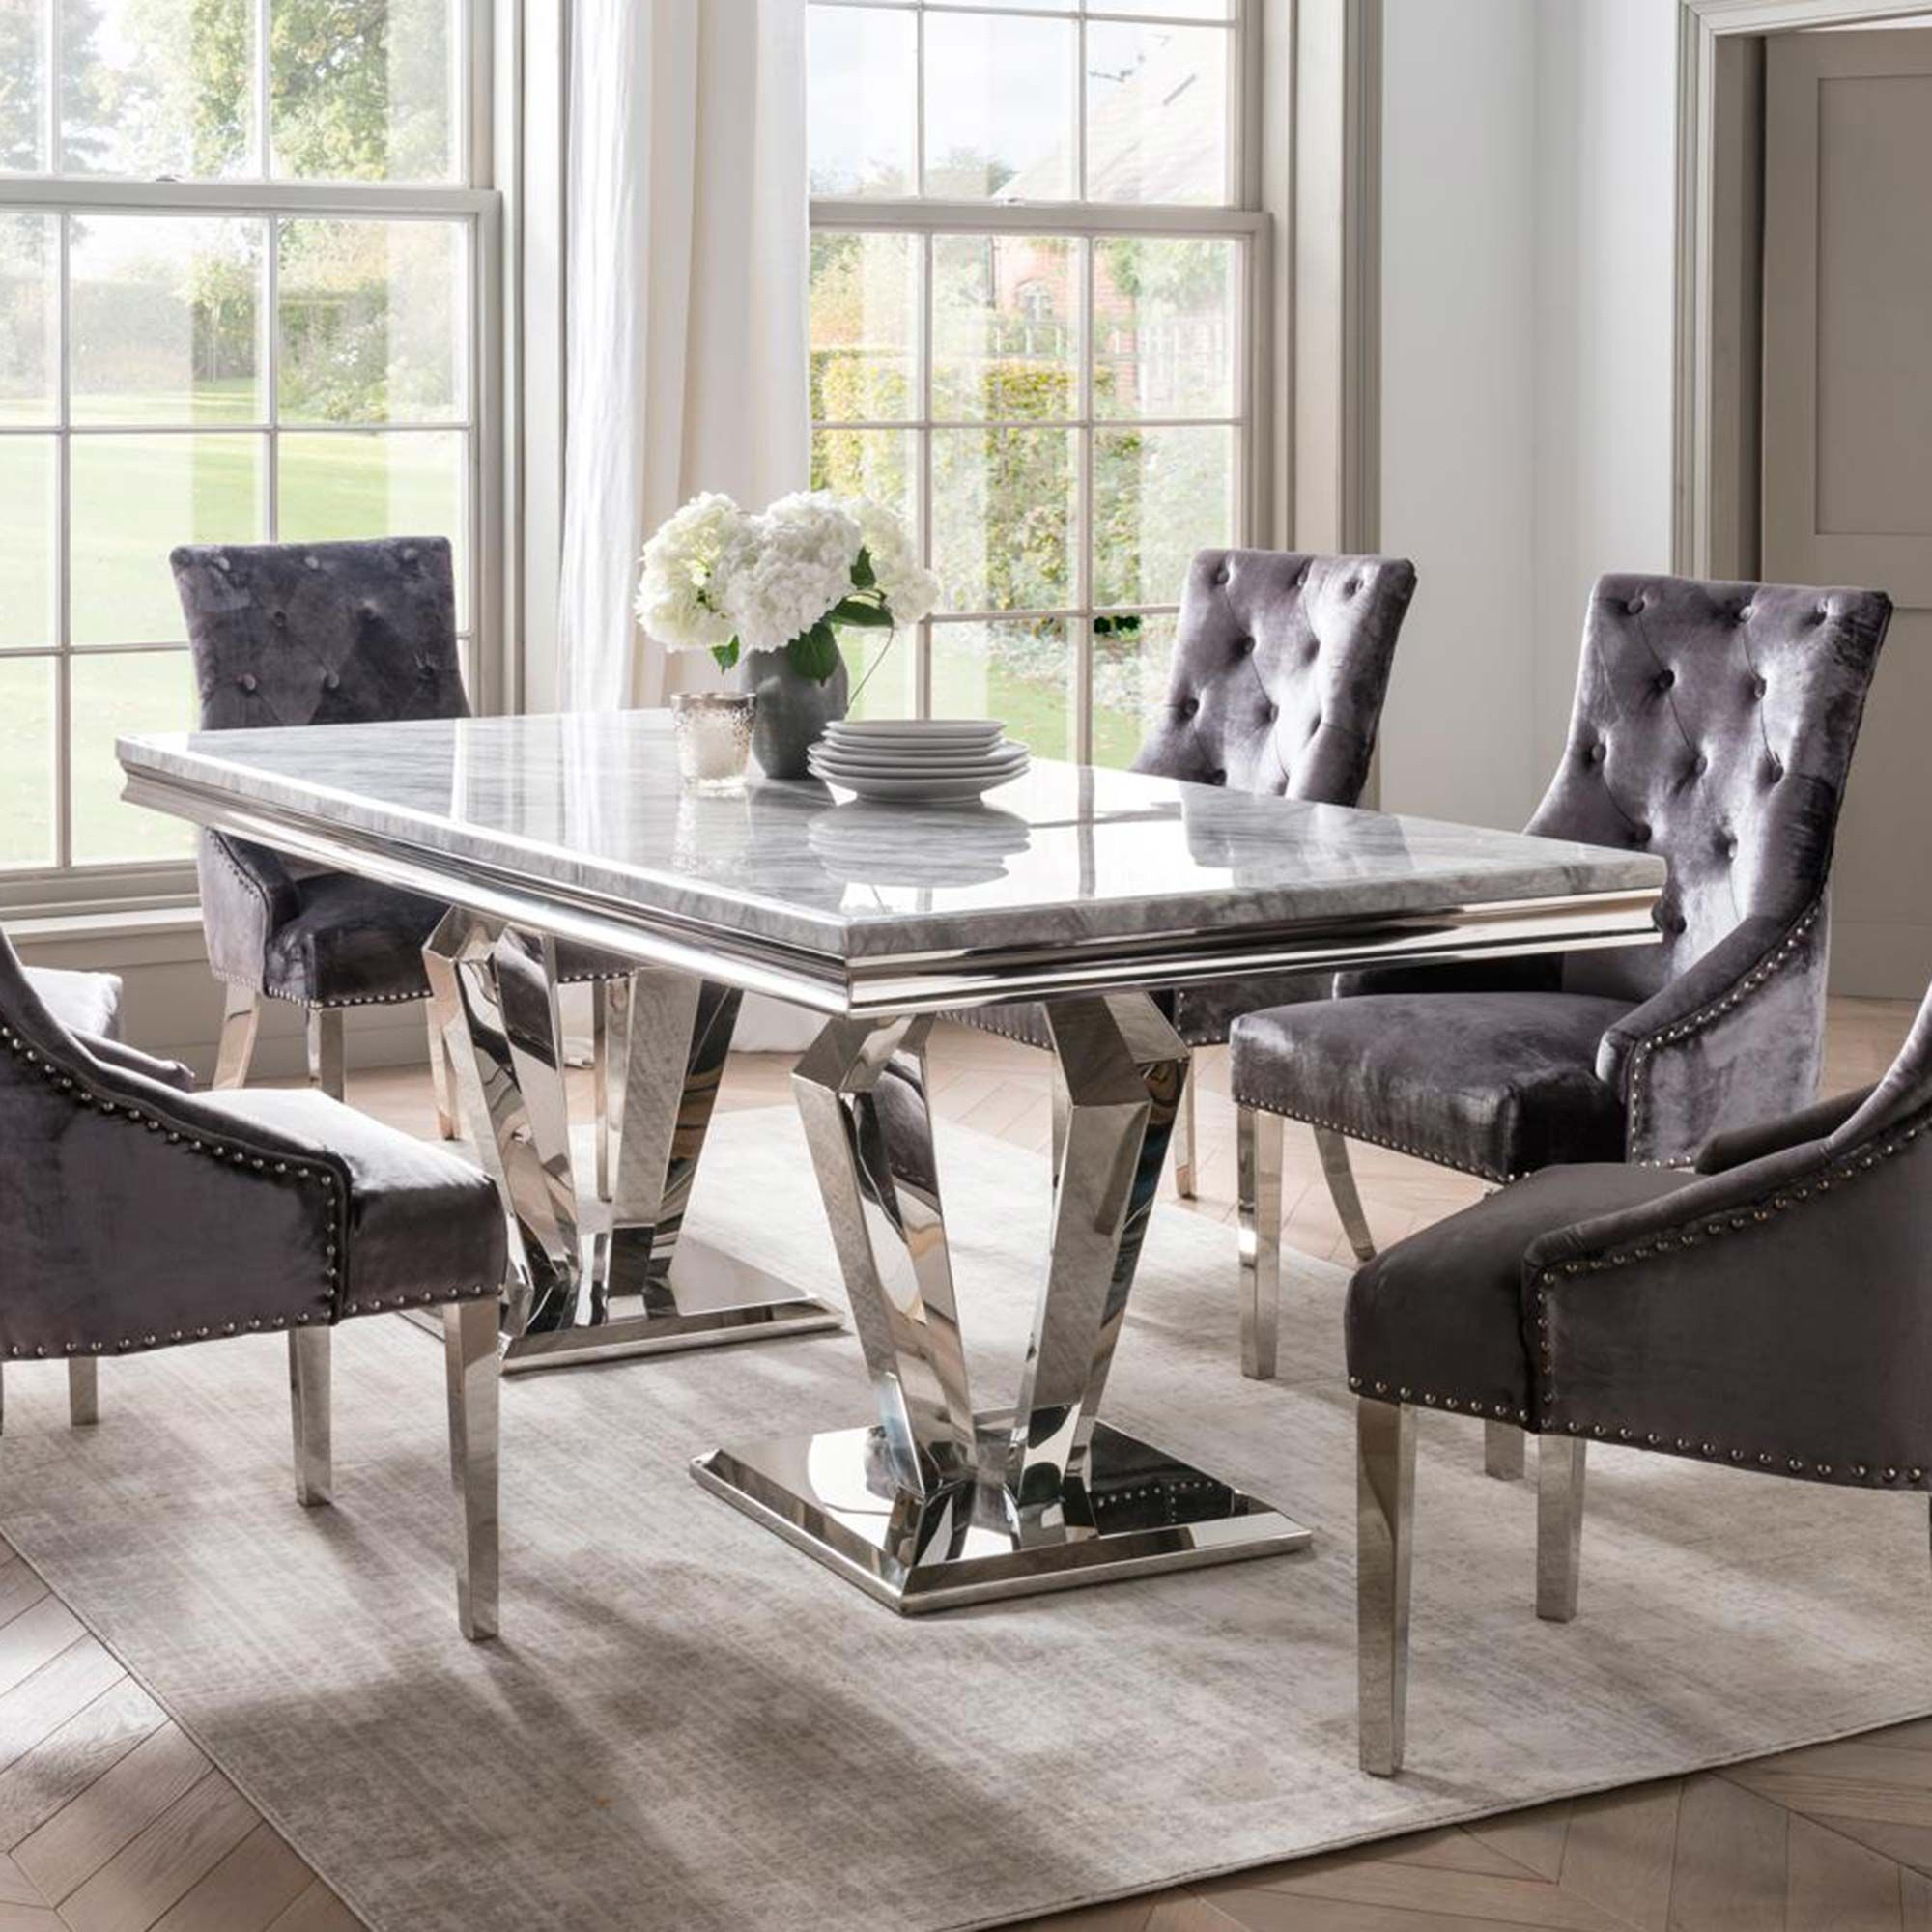 Picture of: Ernest 8 Person Dining Table Stainless Steel Marble Top Dining Tables Meubles